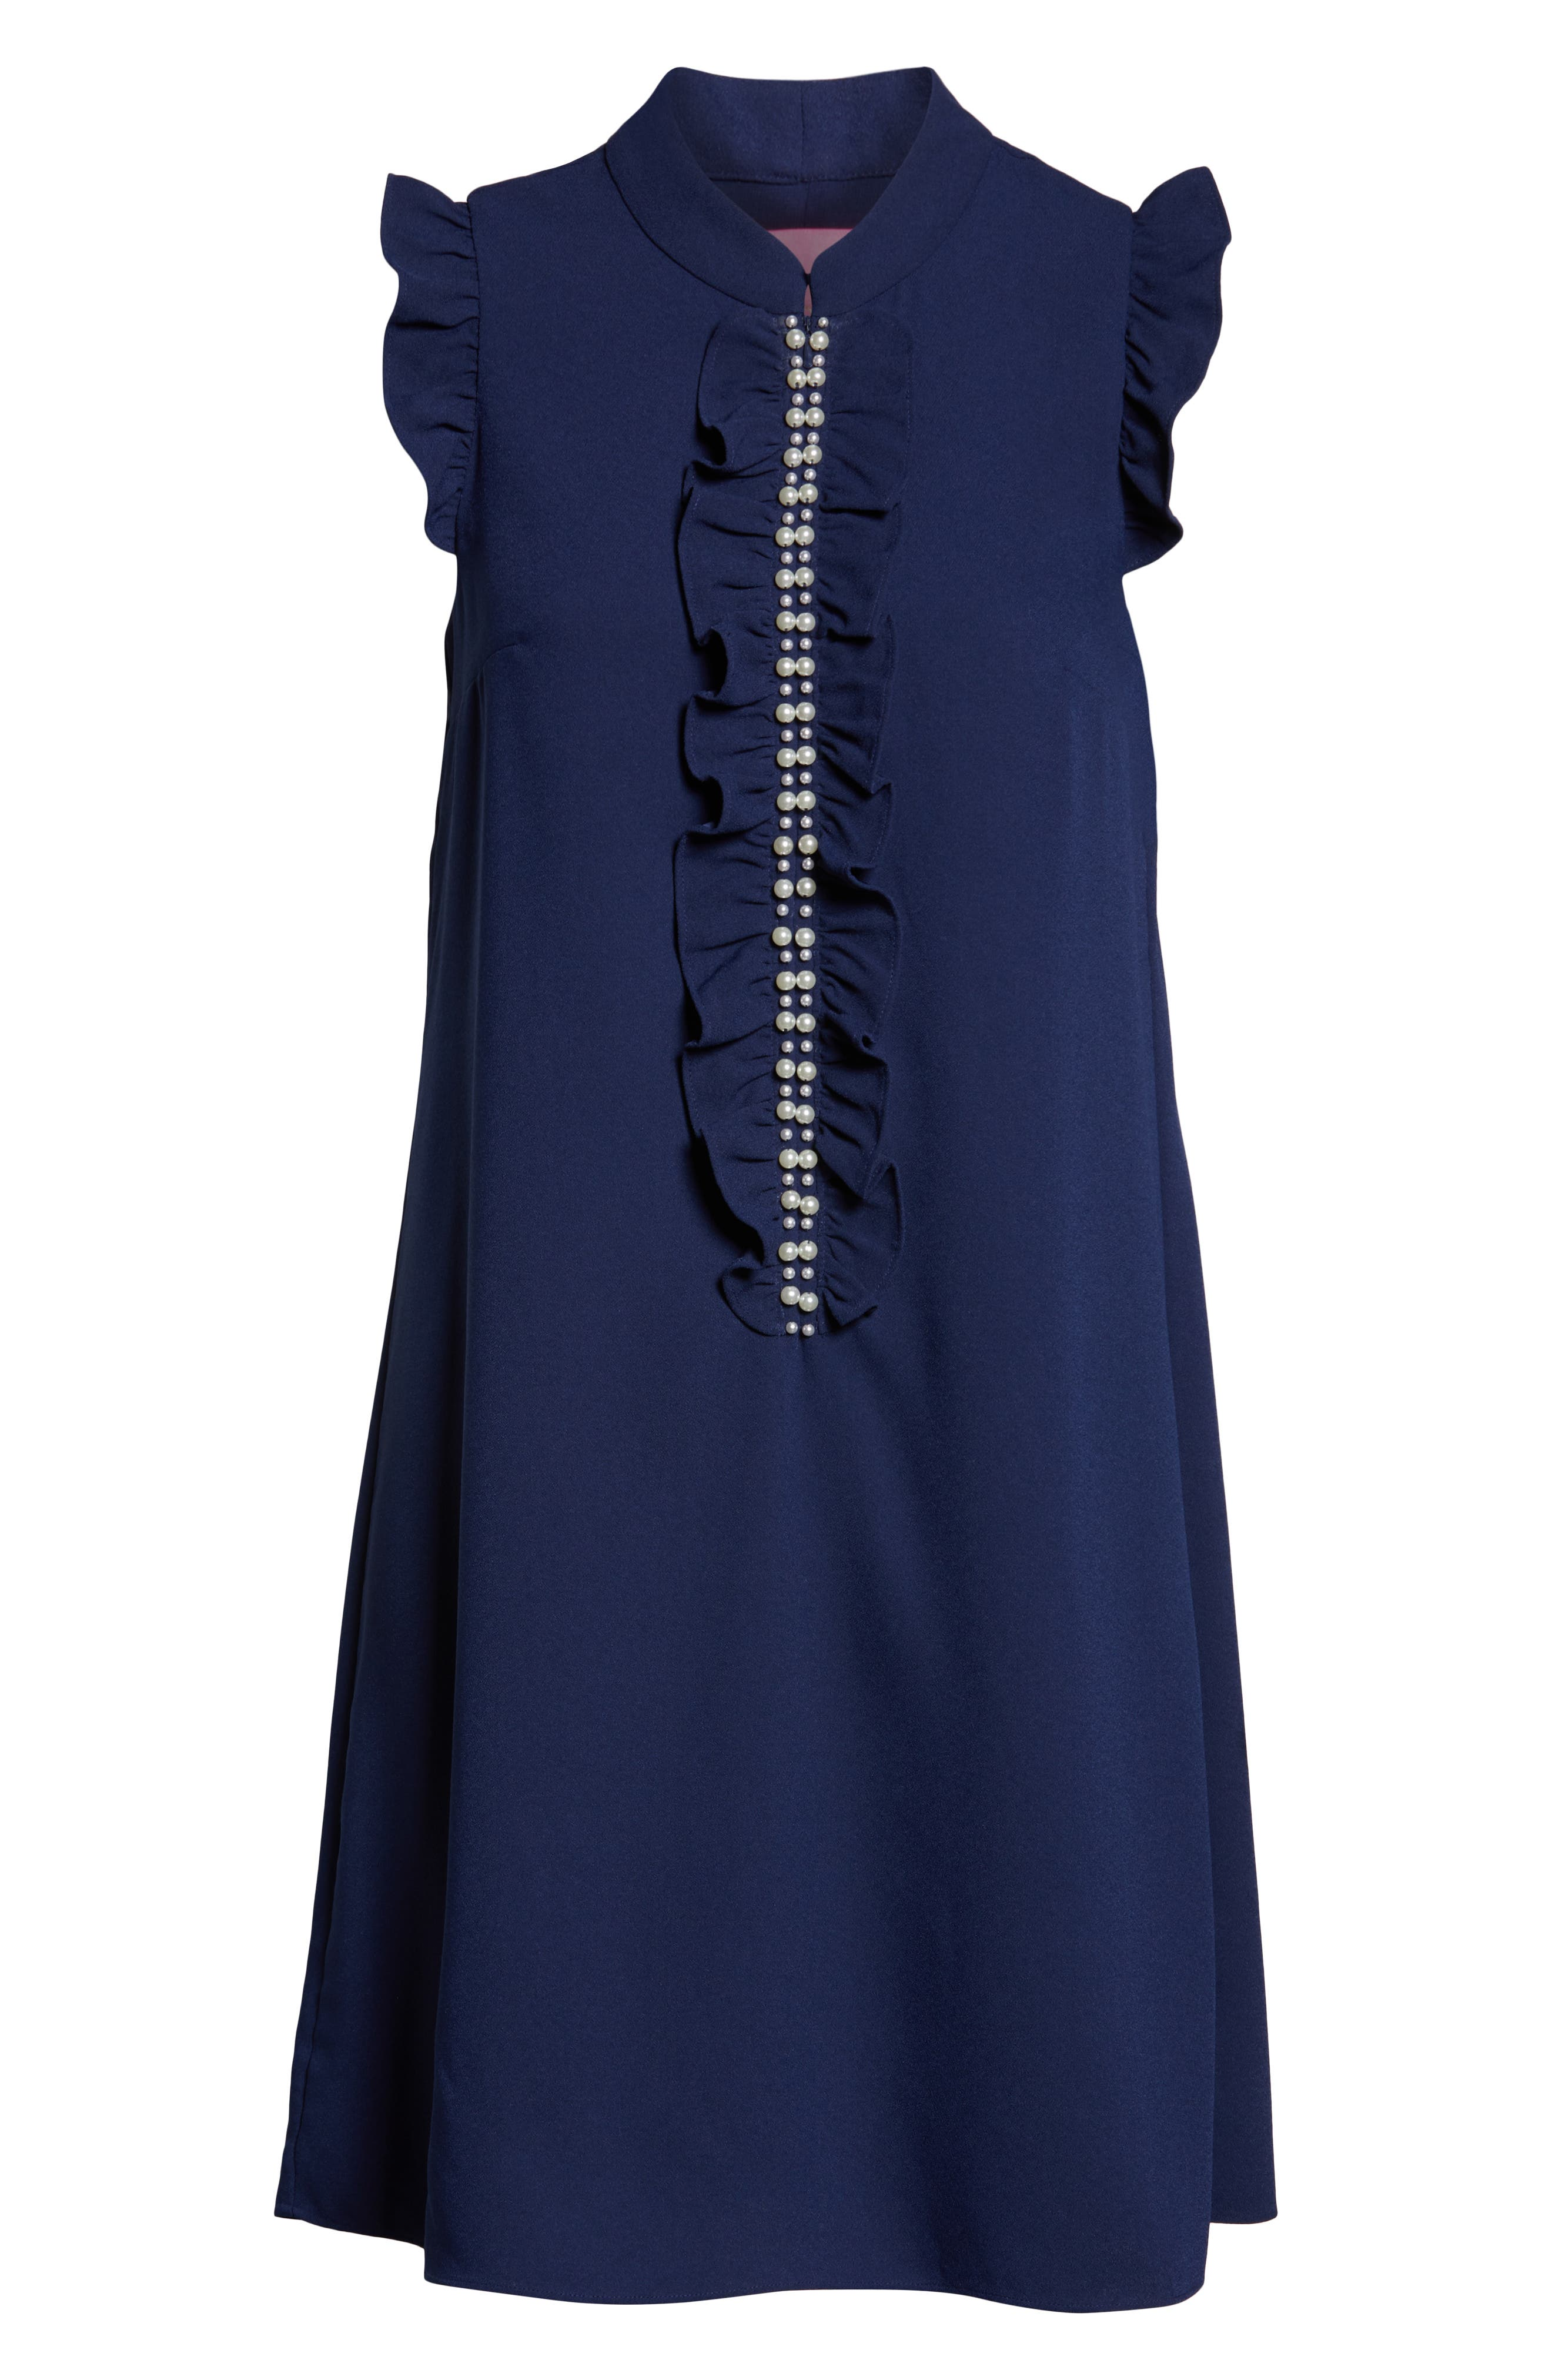 LILLY PULITZER<SUP>®</SUP>, Adalee Shift Dress, Alternate thumbnail 6, color, TRUE NAVY